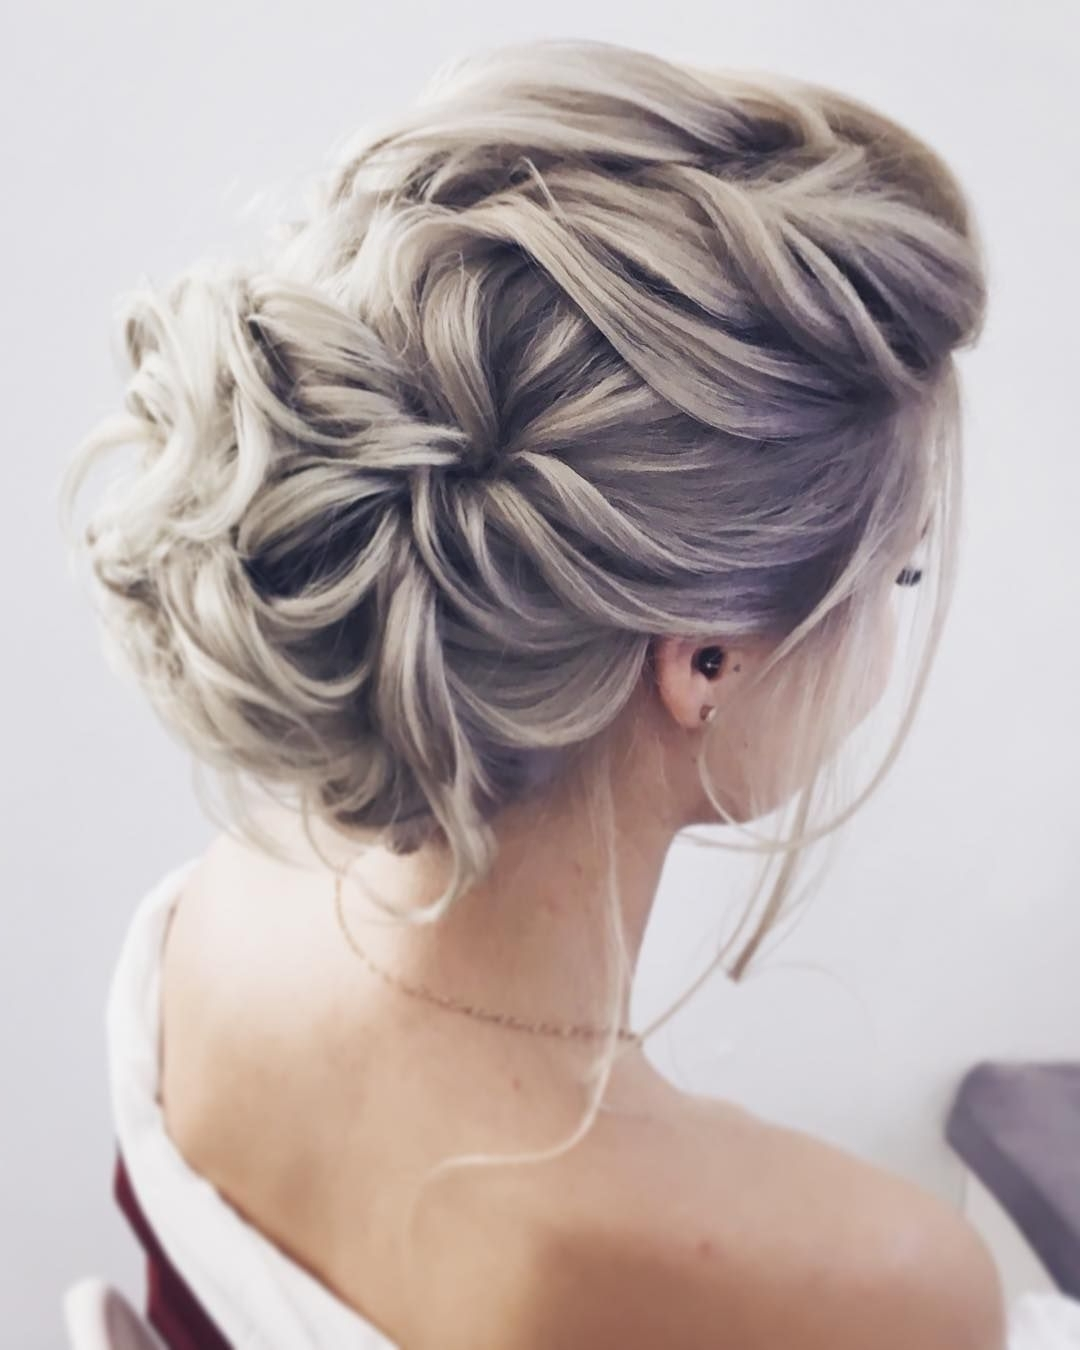 Updo Elegant Wedding Hairstyles For Long Hair #weddinghairstyles In Messy Updo Hairstyles For Wedding (Gallery 2 of 15)